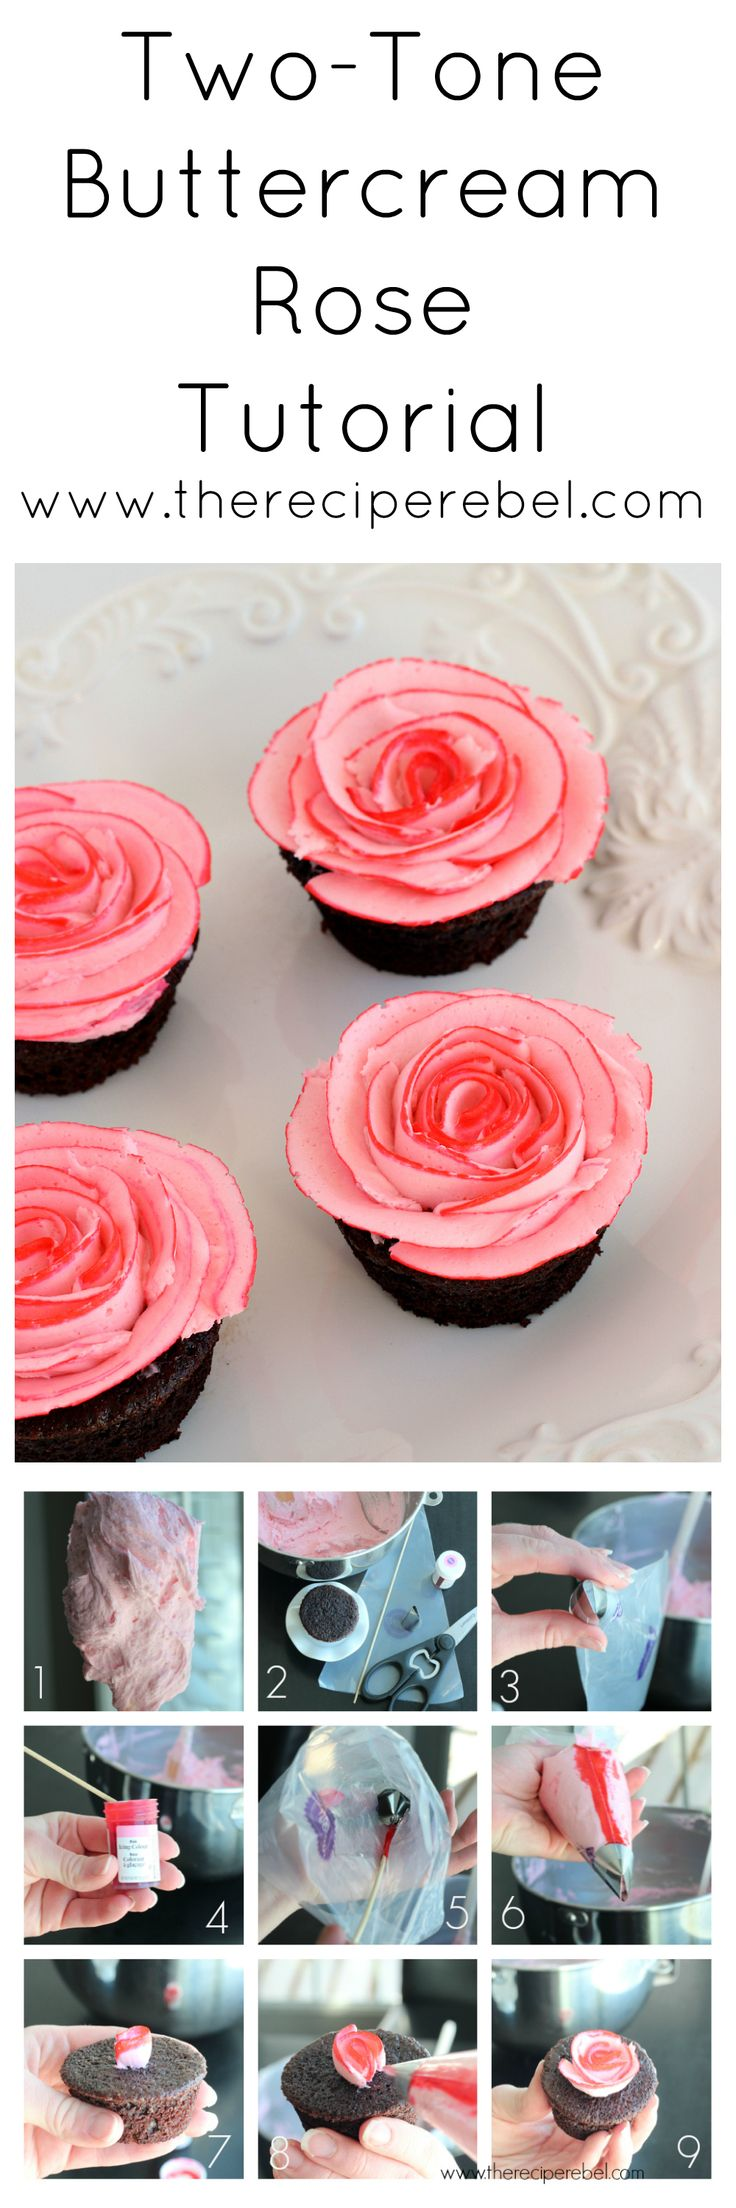 Two Tone Roses piped buttercream decoration on cupcakes  - Afternoon Tea or Spring Mothers Day cakes and baking inspiration